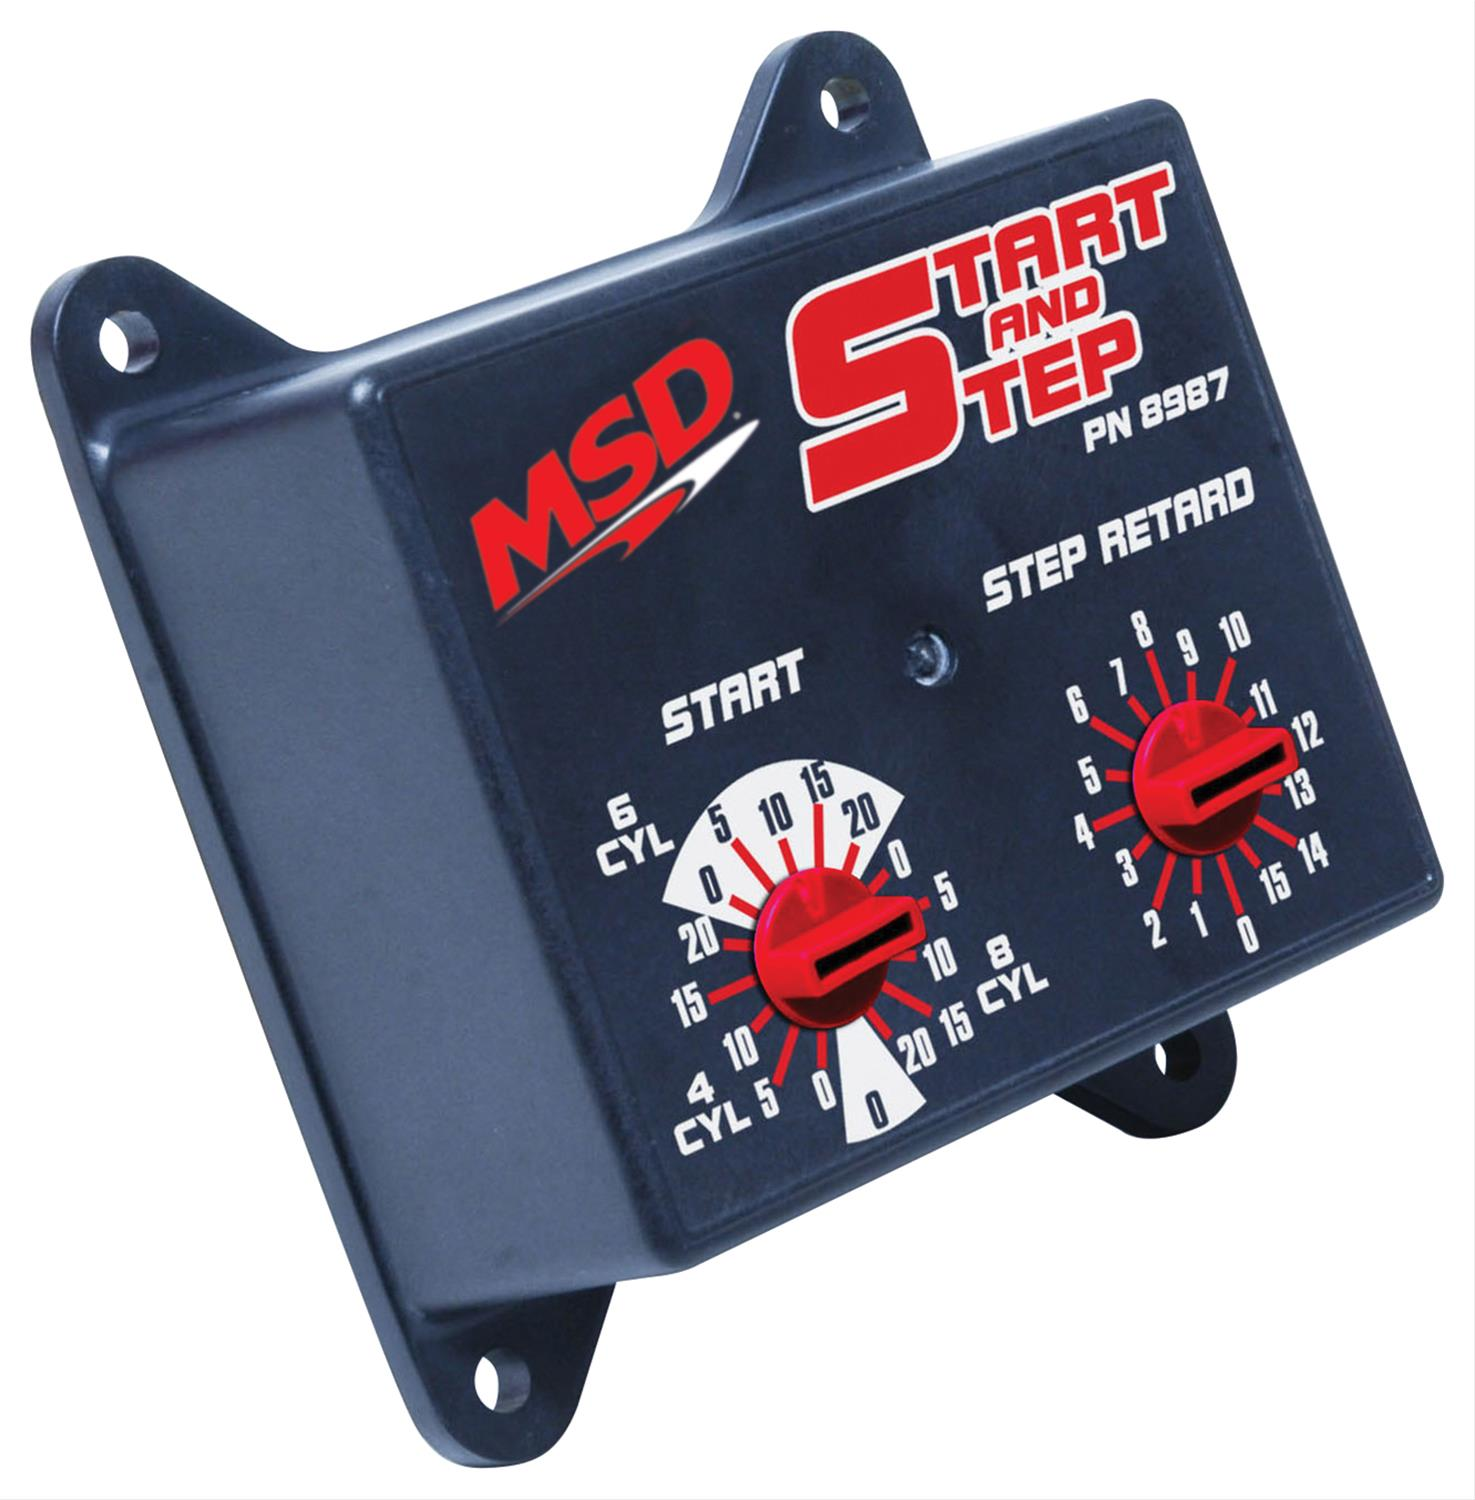 hight resolution of msd start and step timing controls 8987 free shipping on orders over 99 at summit racing